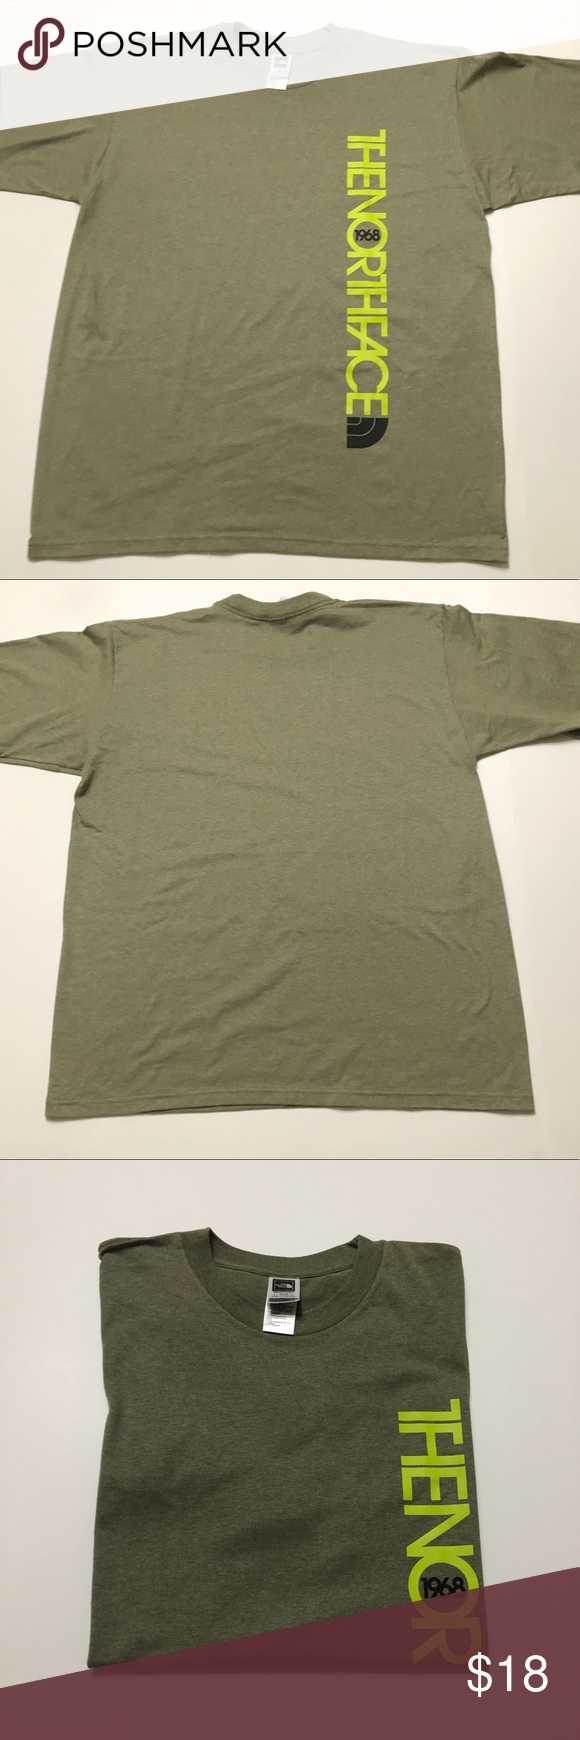 The Northface 1968 Spell Out Army Green T Shirt North Face Shirts The North Face Shirts